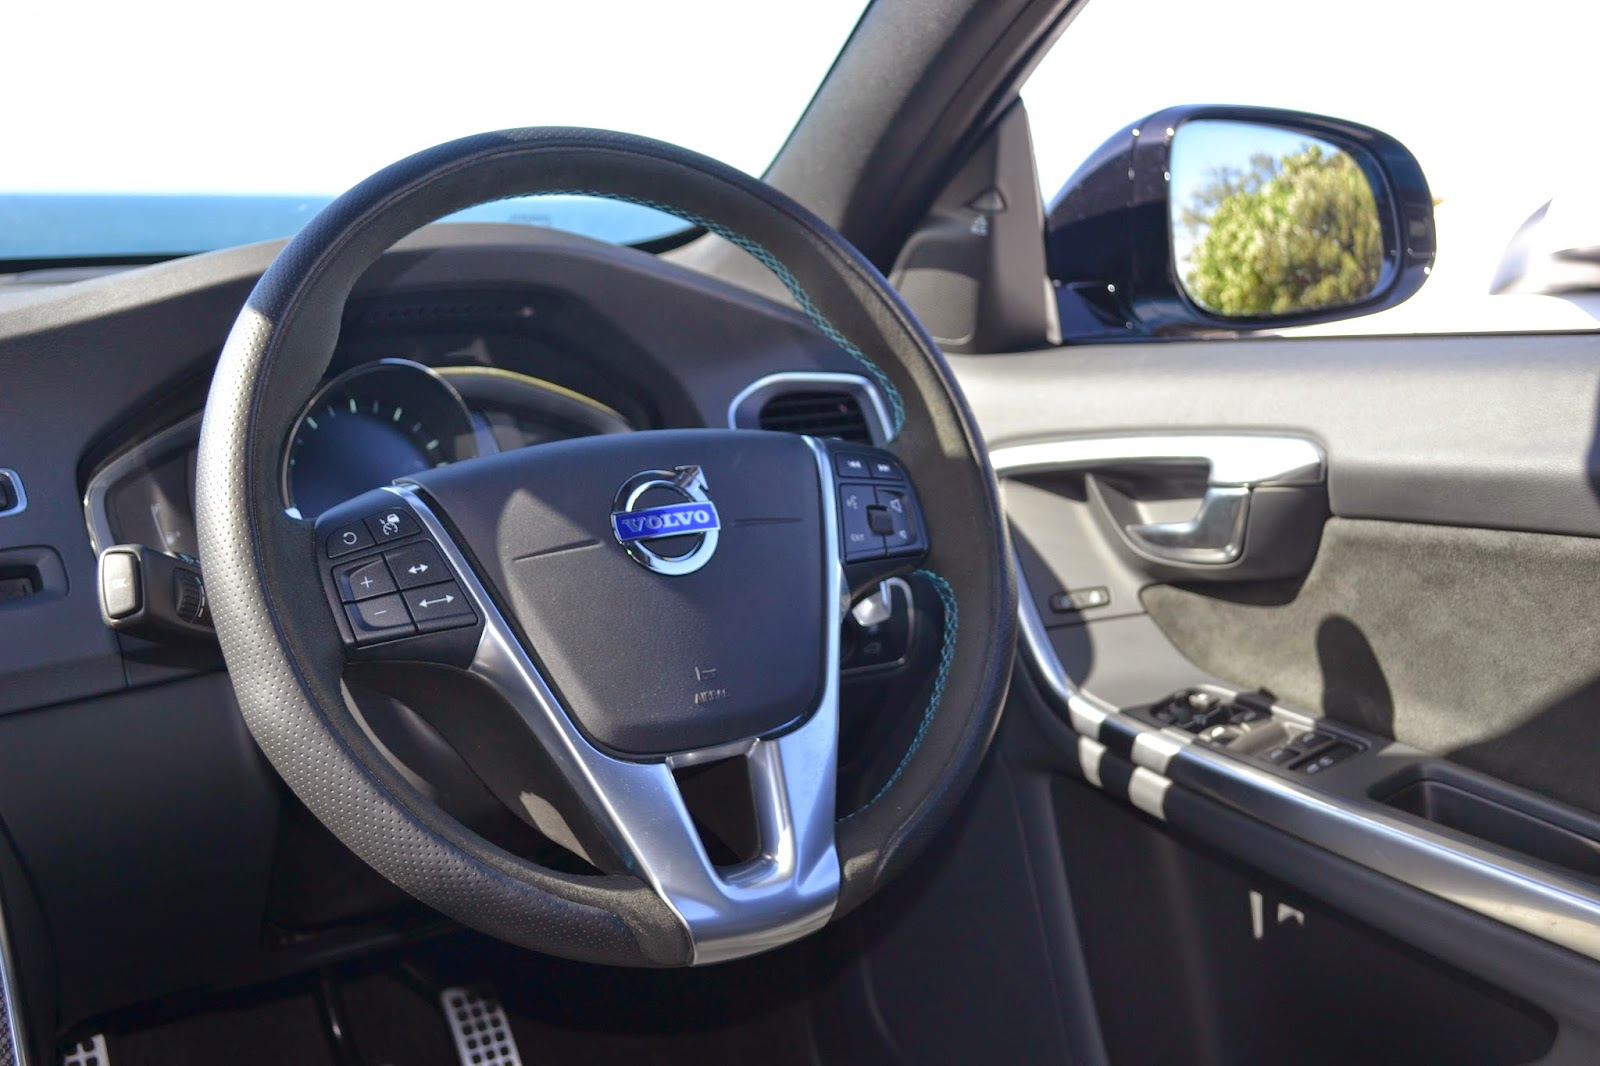 Those buttons on the left of the wheel control the active cruise control